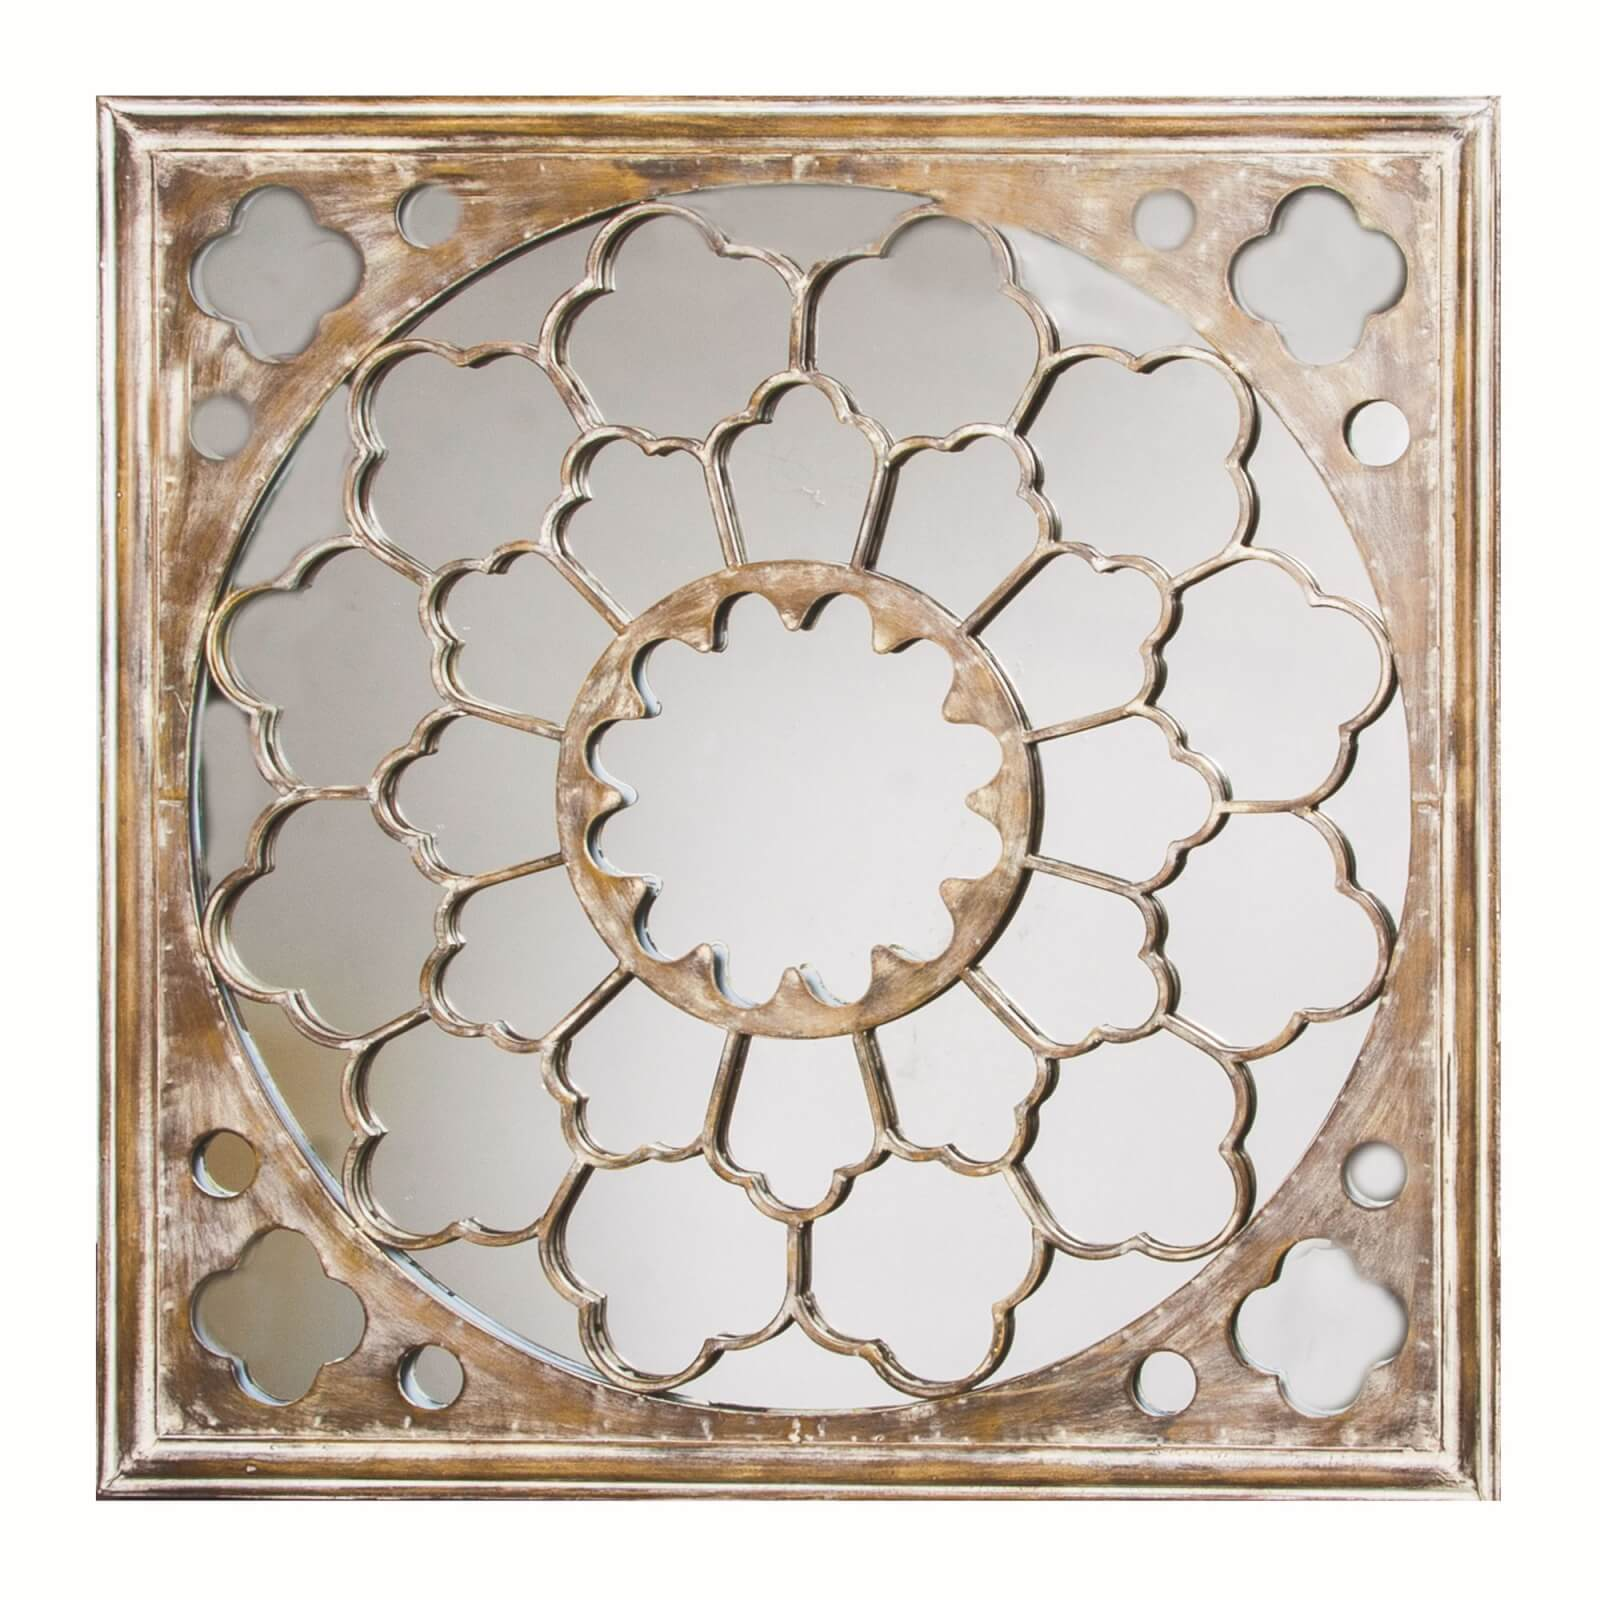 Art For The Home Silver Fretwork Ornate Mirror